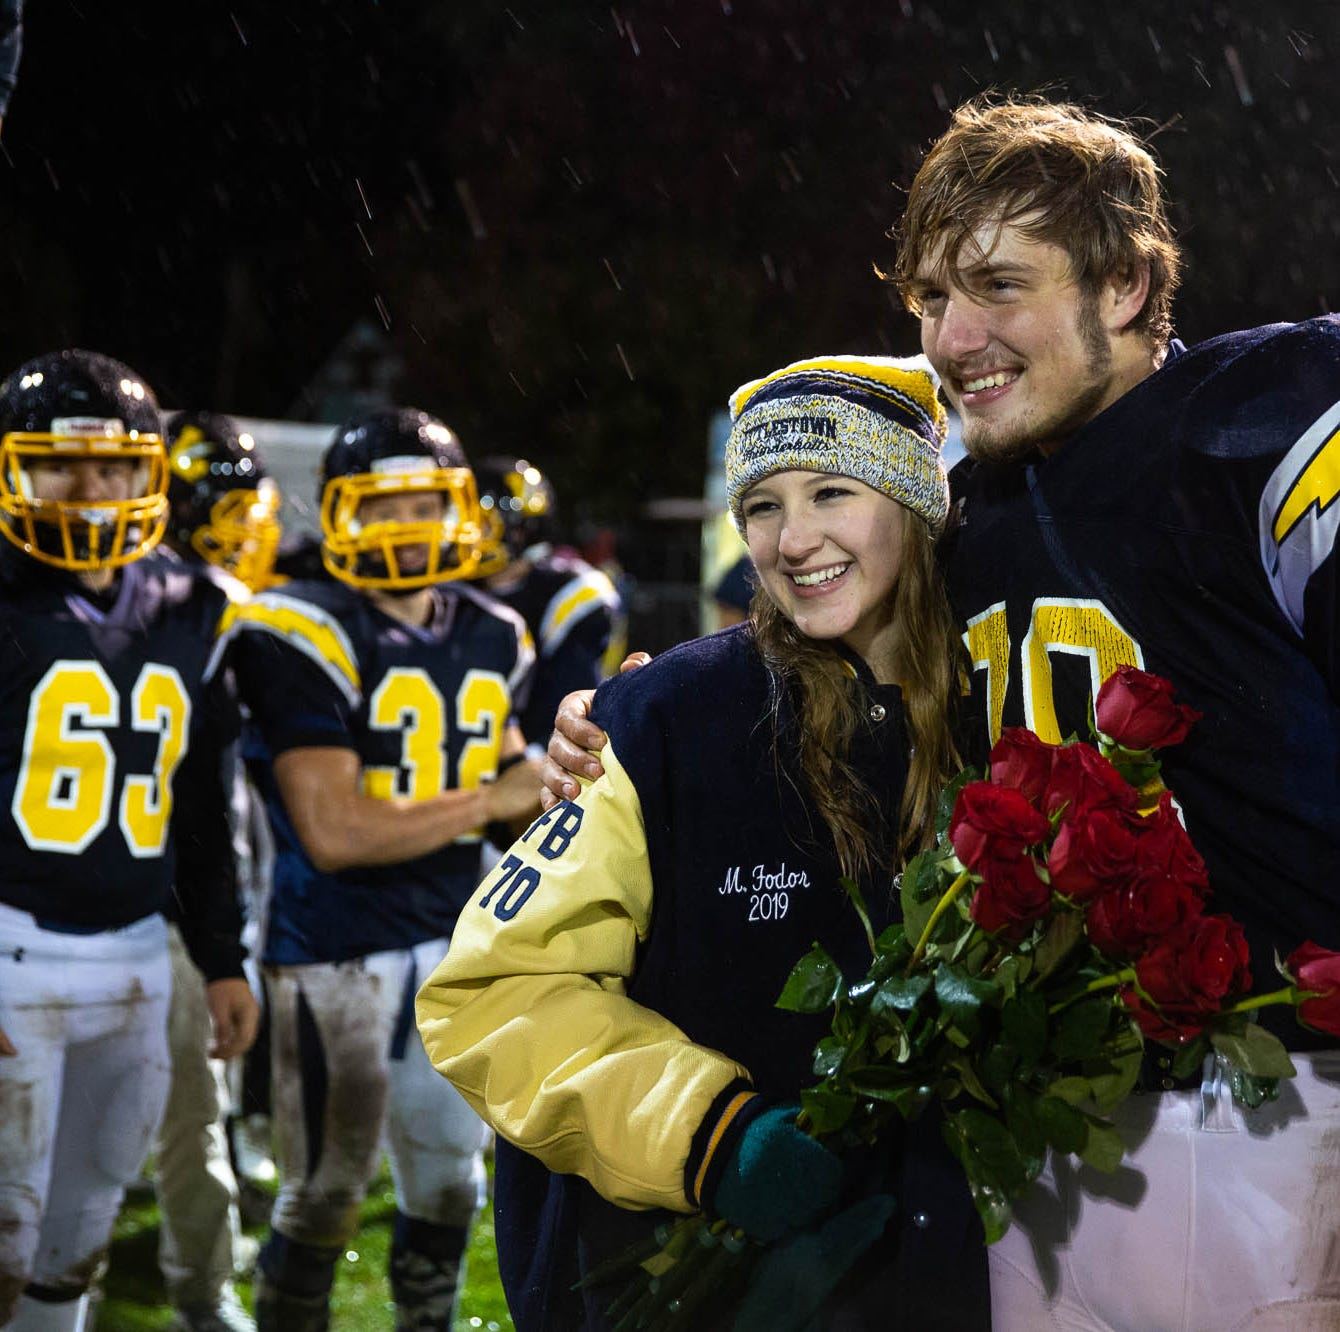 Littlestown football player talks gridiron proposal ahead of district playoff game